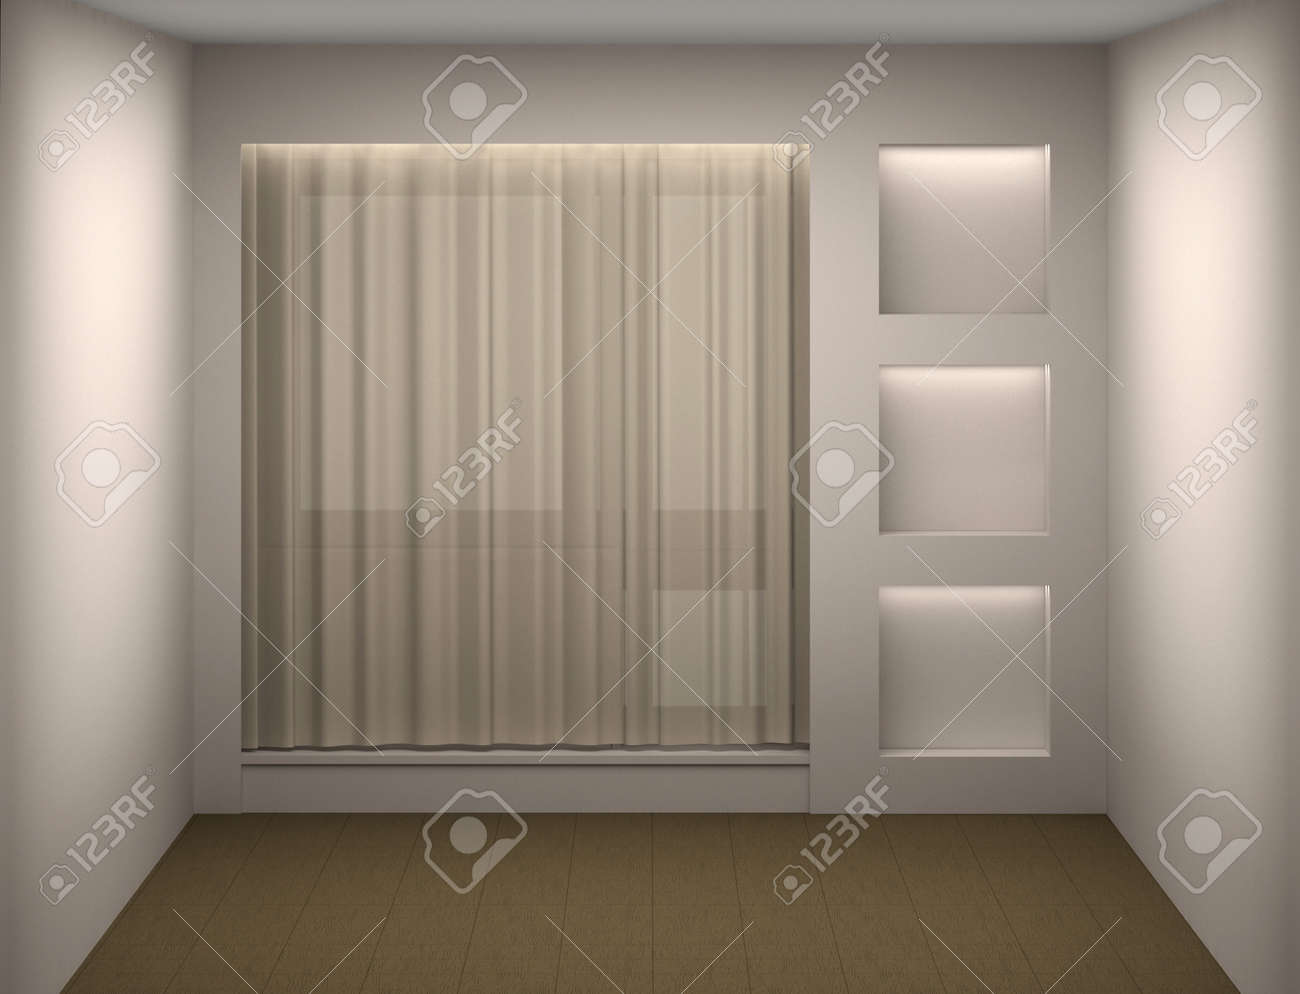 Empty white room with a curtain and a show-window Stock Photo - 12445988